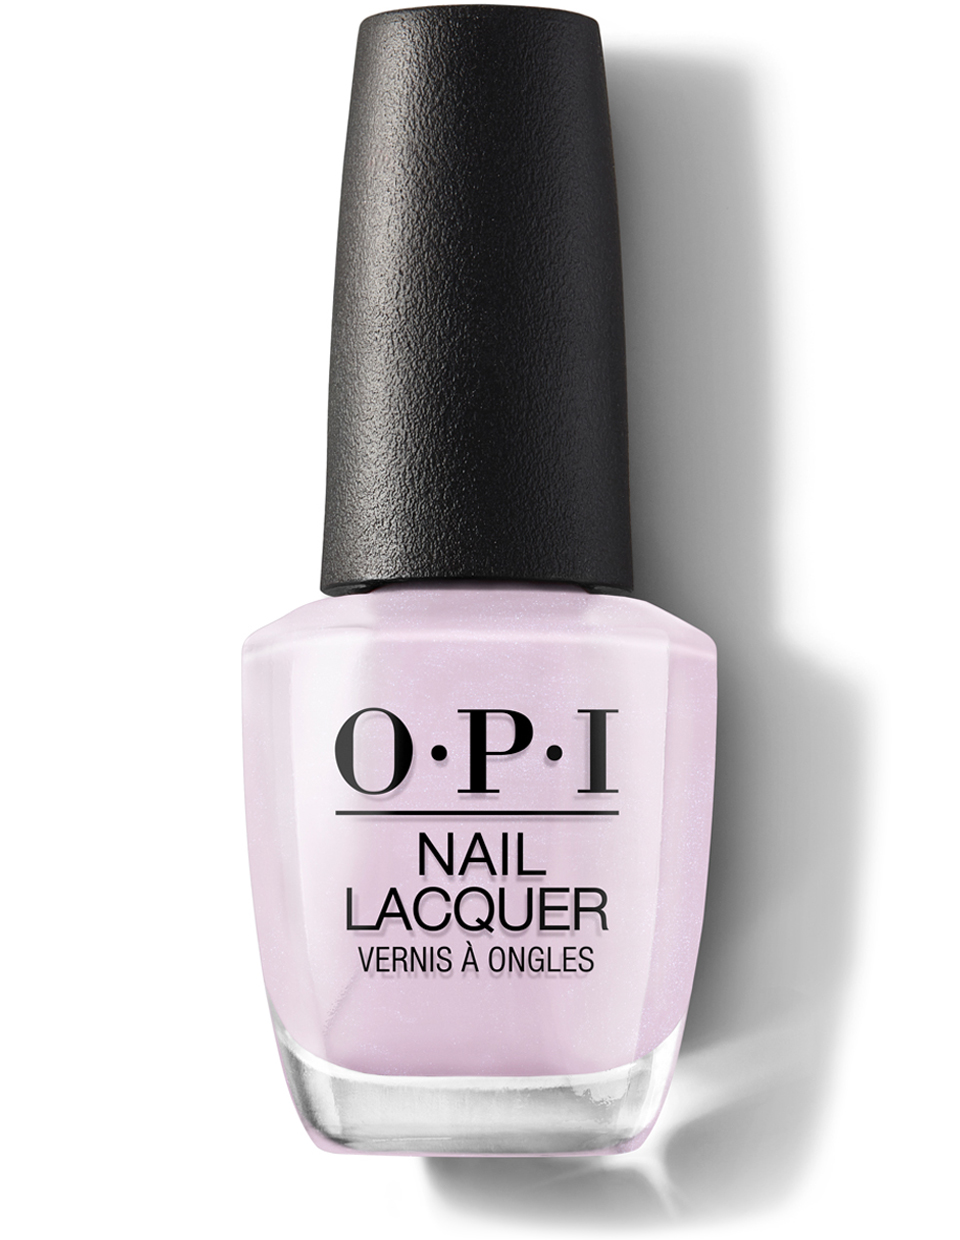 Frenchie Likes To Kiss? - Nail Lacquer | OPI